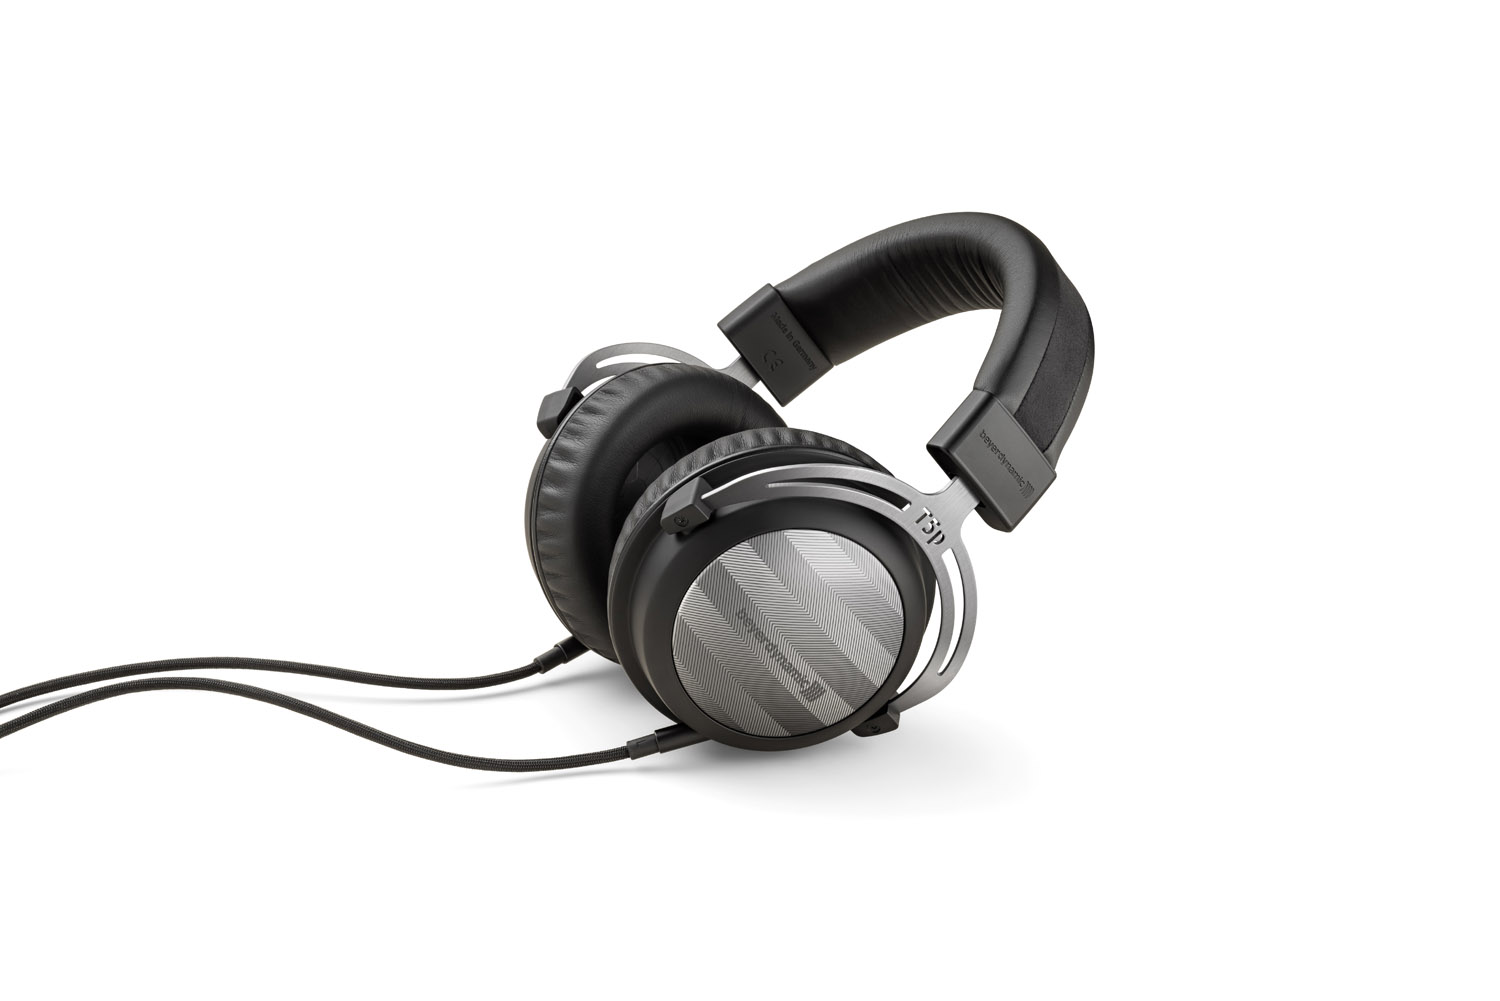 Beyerdynamic T5 p Headphone 2. Generation, closed, 32 Ohms, Tesla Technology